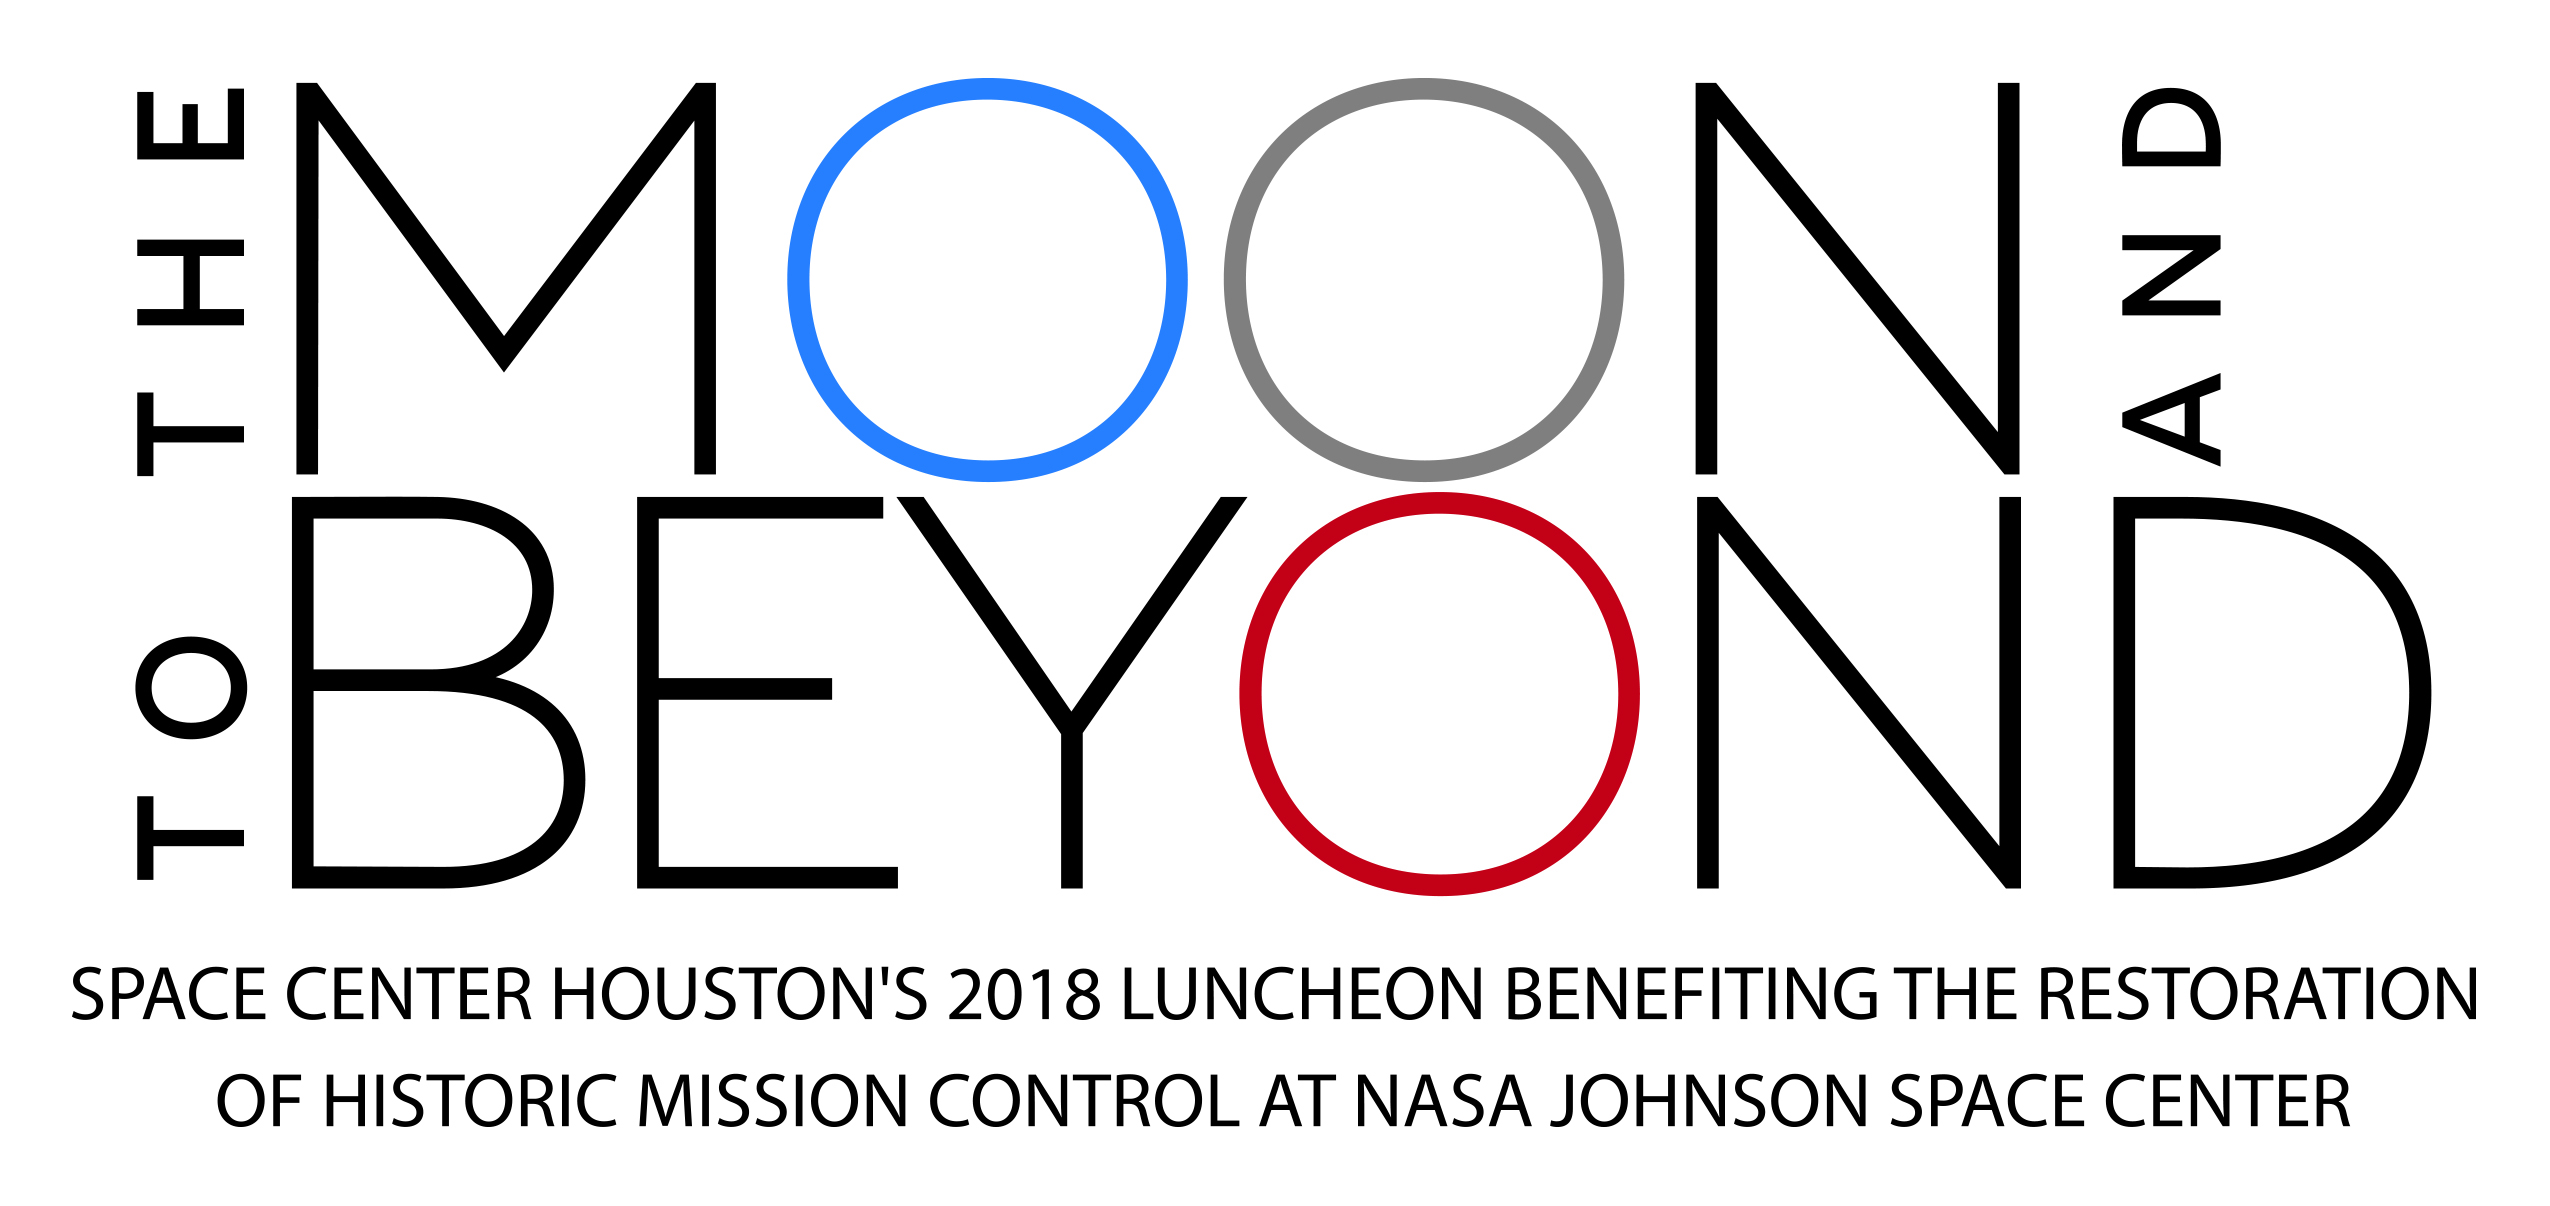 To the Moon and Beyond 2018 Luncheon to restore Historic Mission Control logo